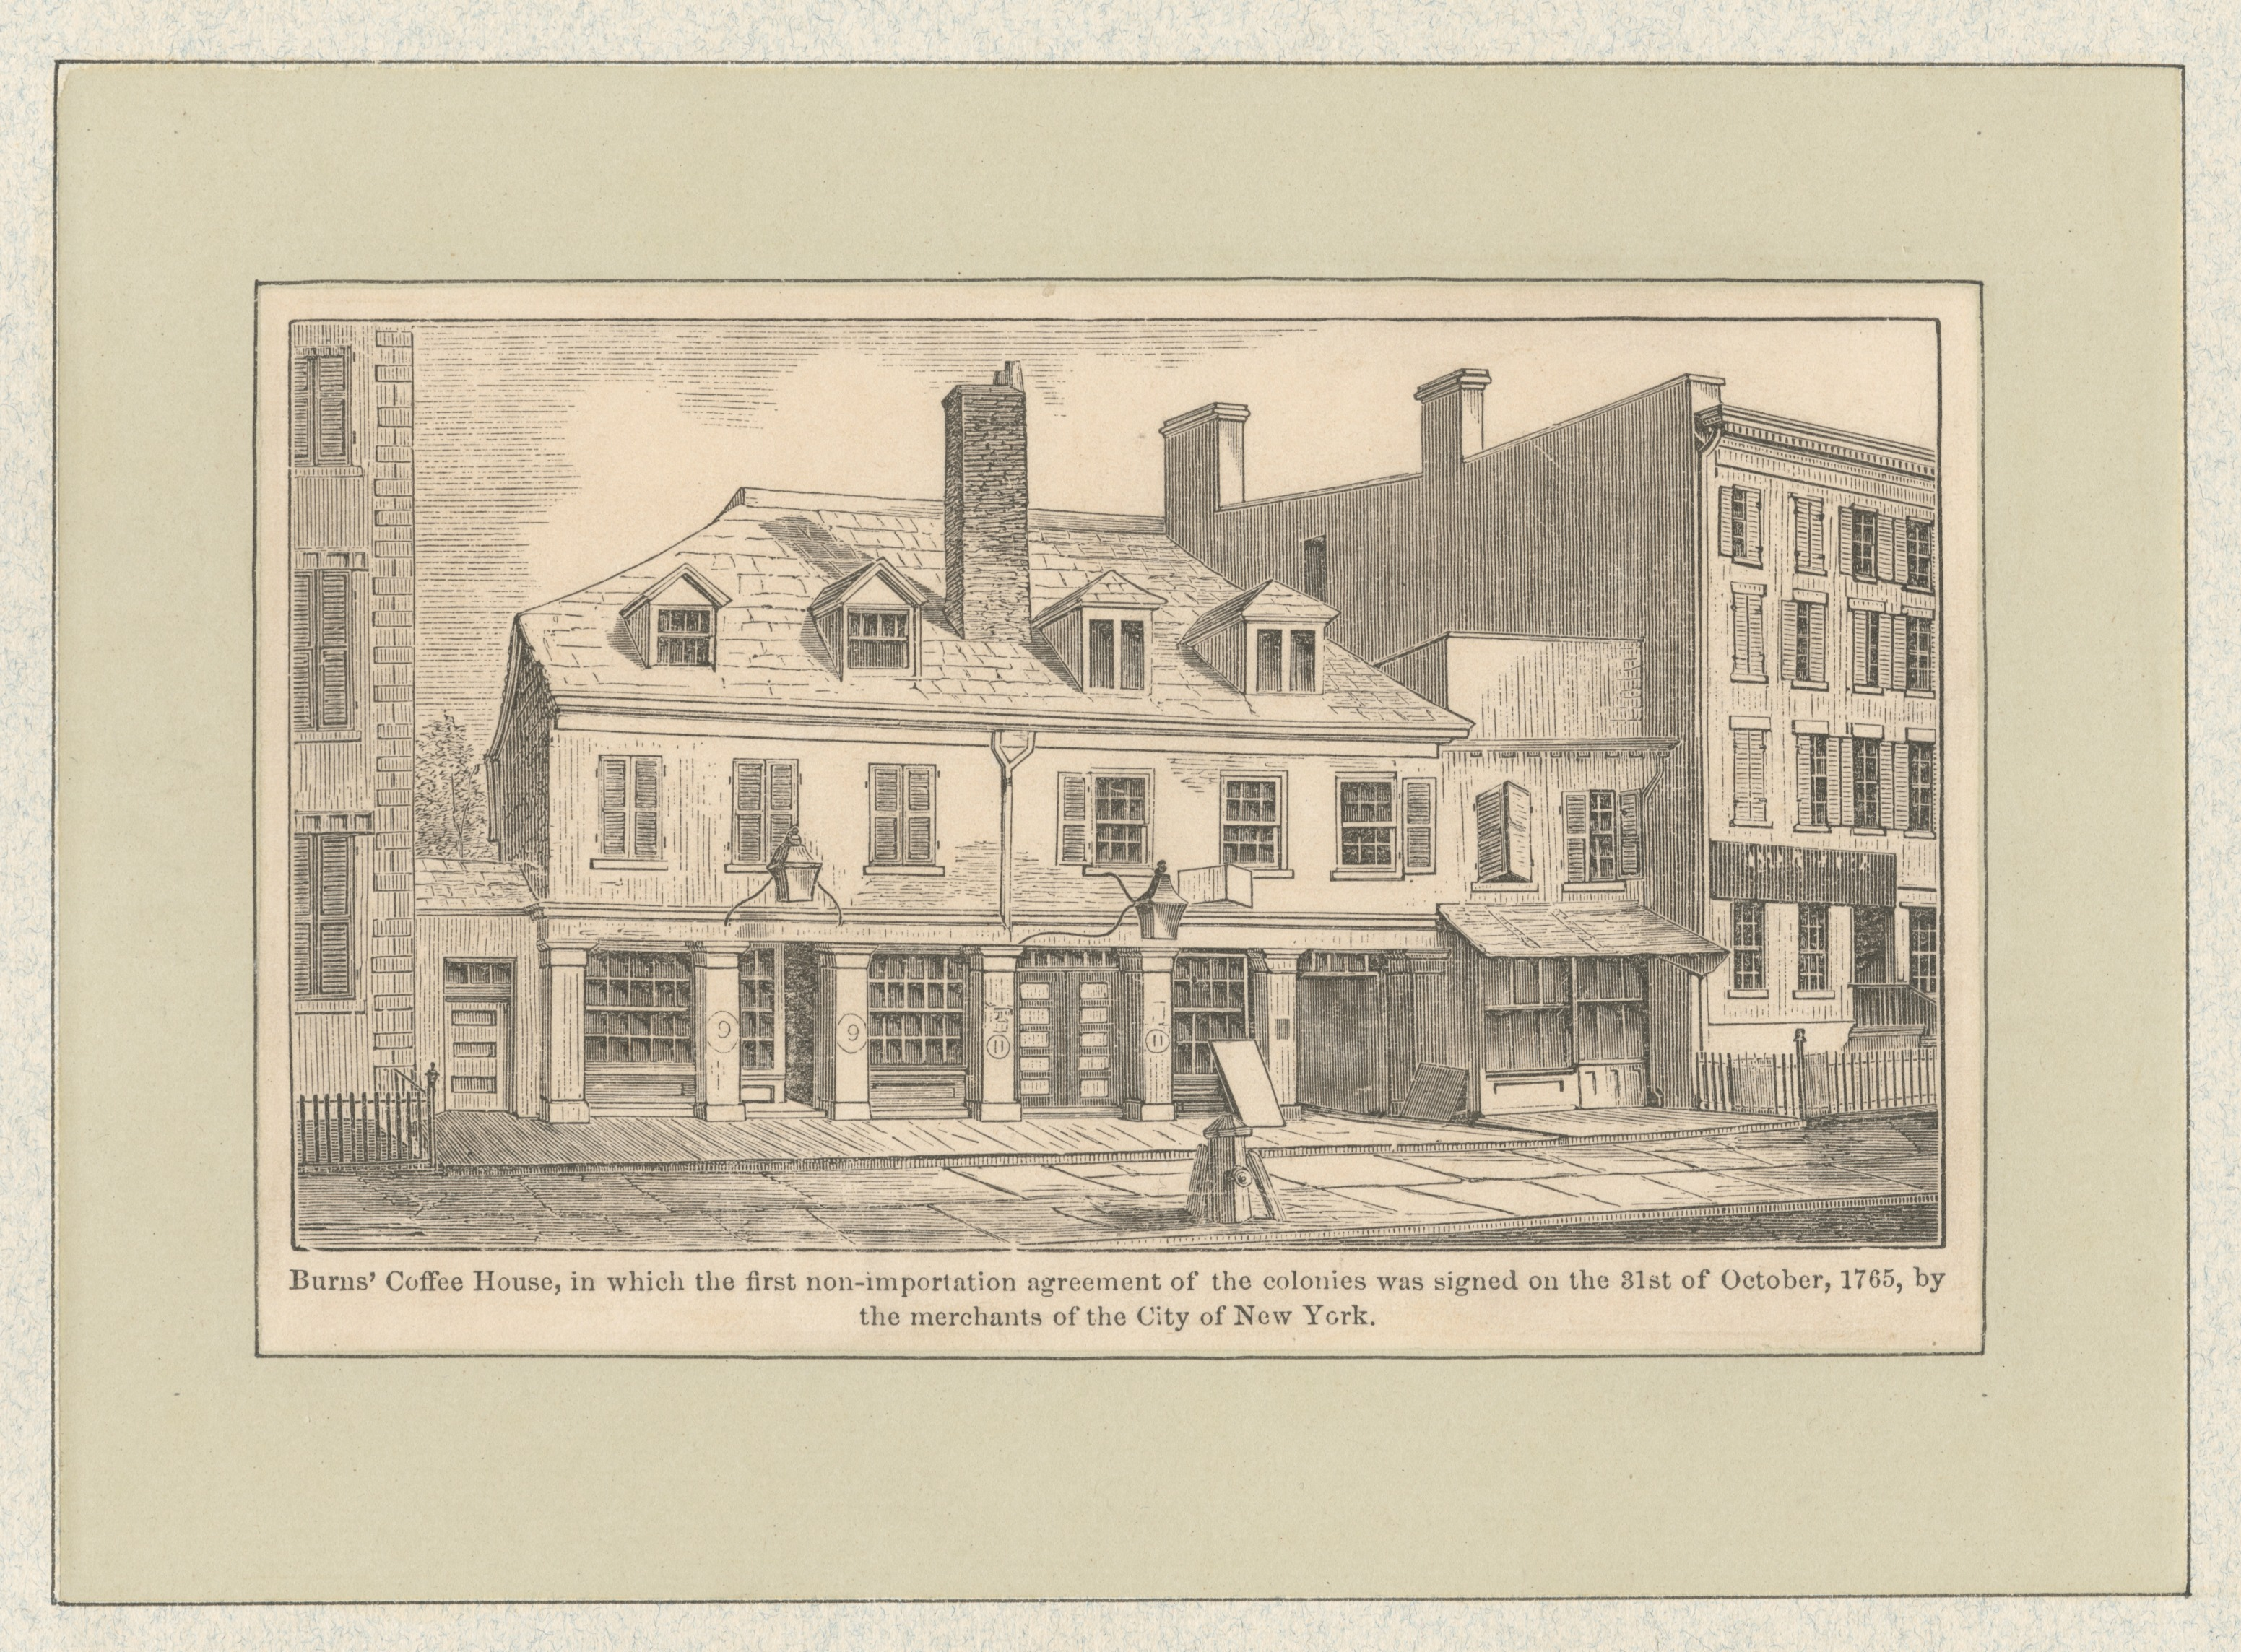 Fileburns Coffee House In Which The First Non Importation